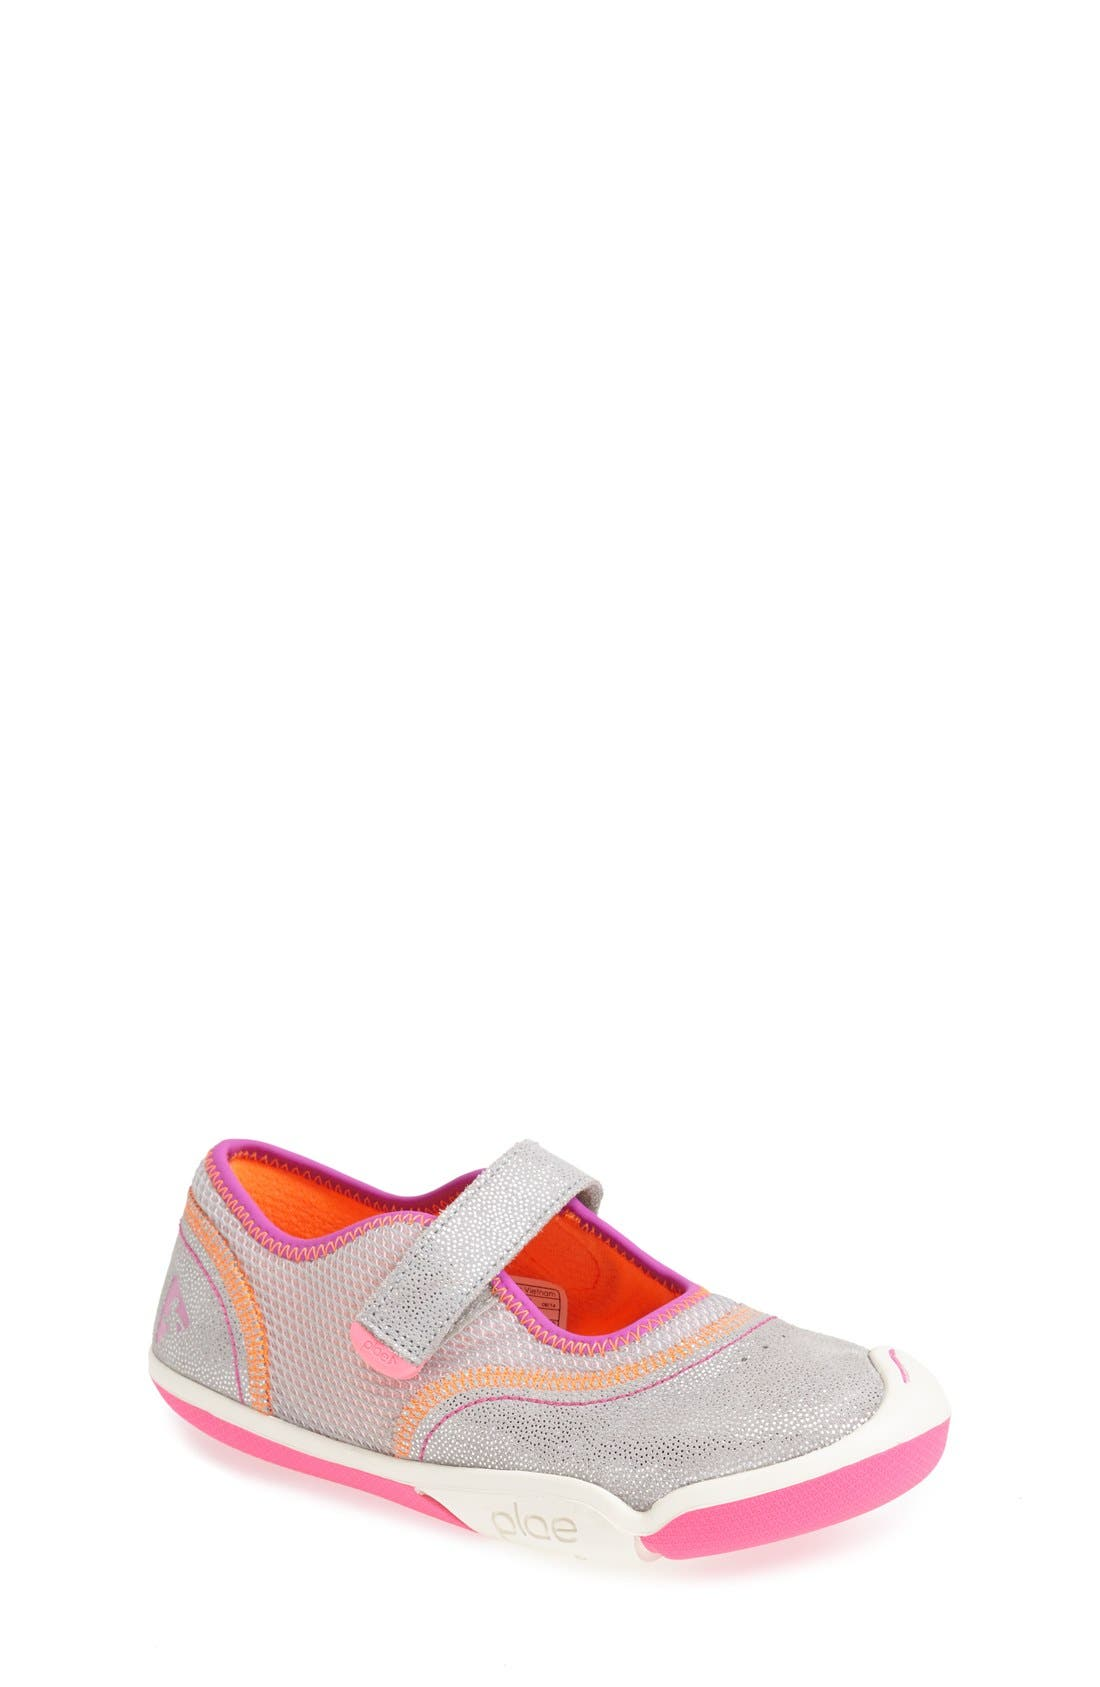 Emme Customizable Mary Jane,                         Main,                         color, SILVER/ PINK